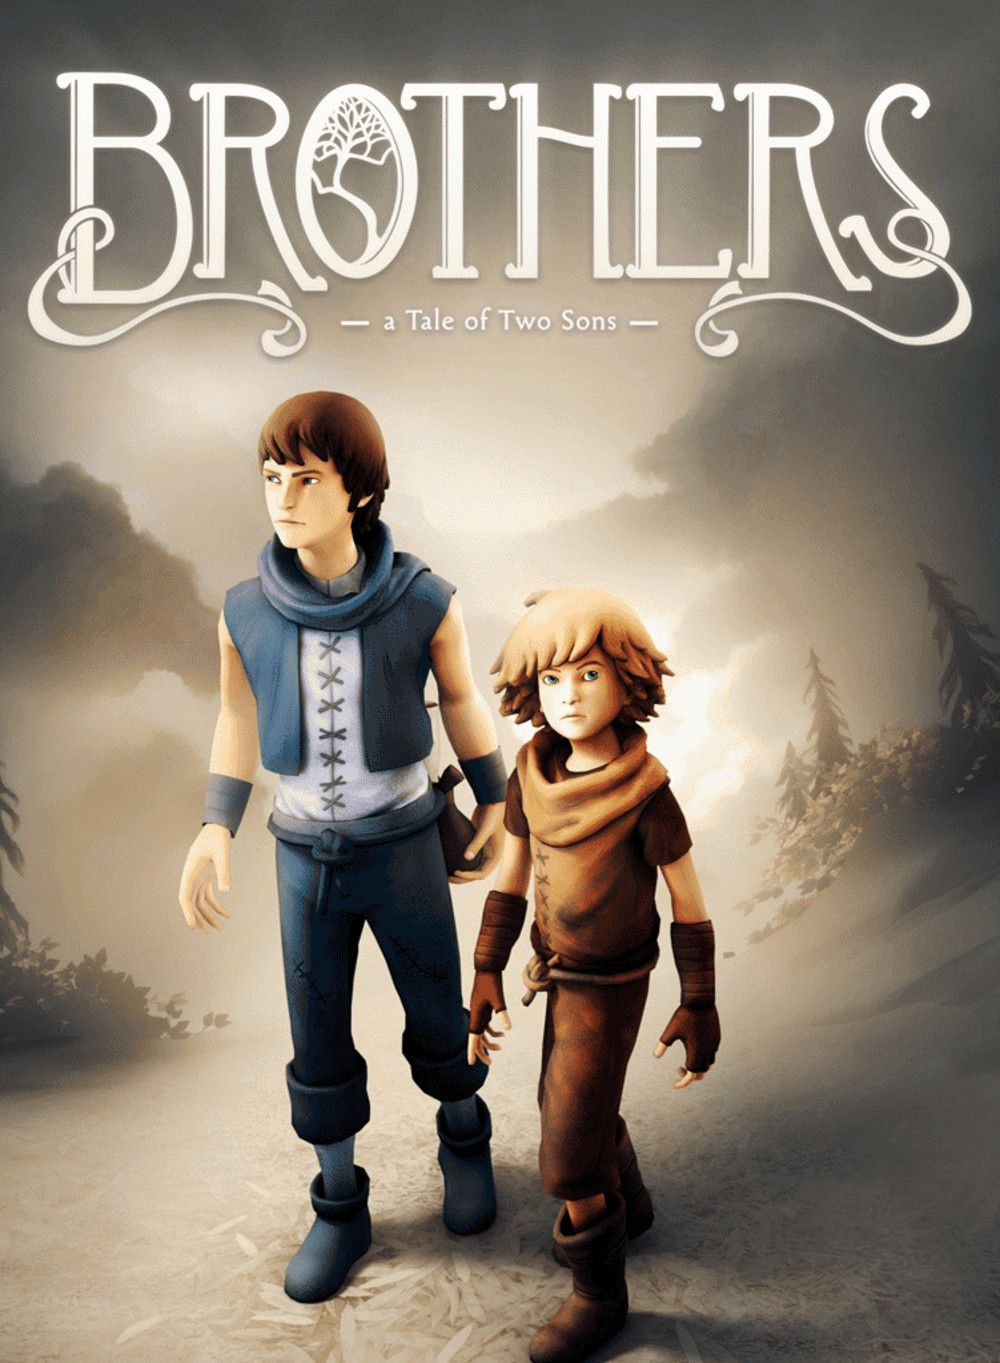 Brothers : A Tale of Two Sons (2013)  - Jeu vidéo streaming VF gratuit complet